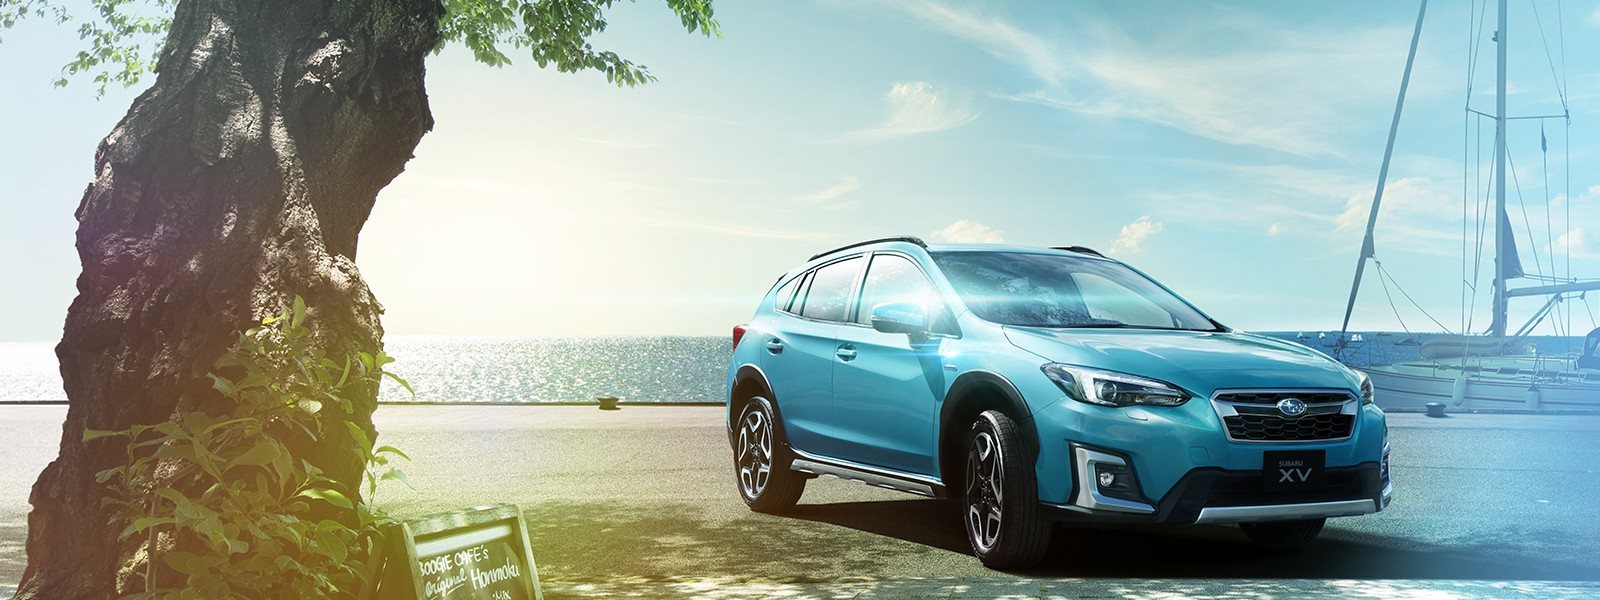 2019 Subaru XV e-Boxer Debuts In Japan With Toyota Prius ...